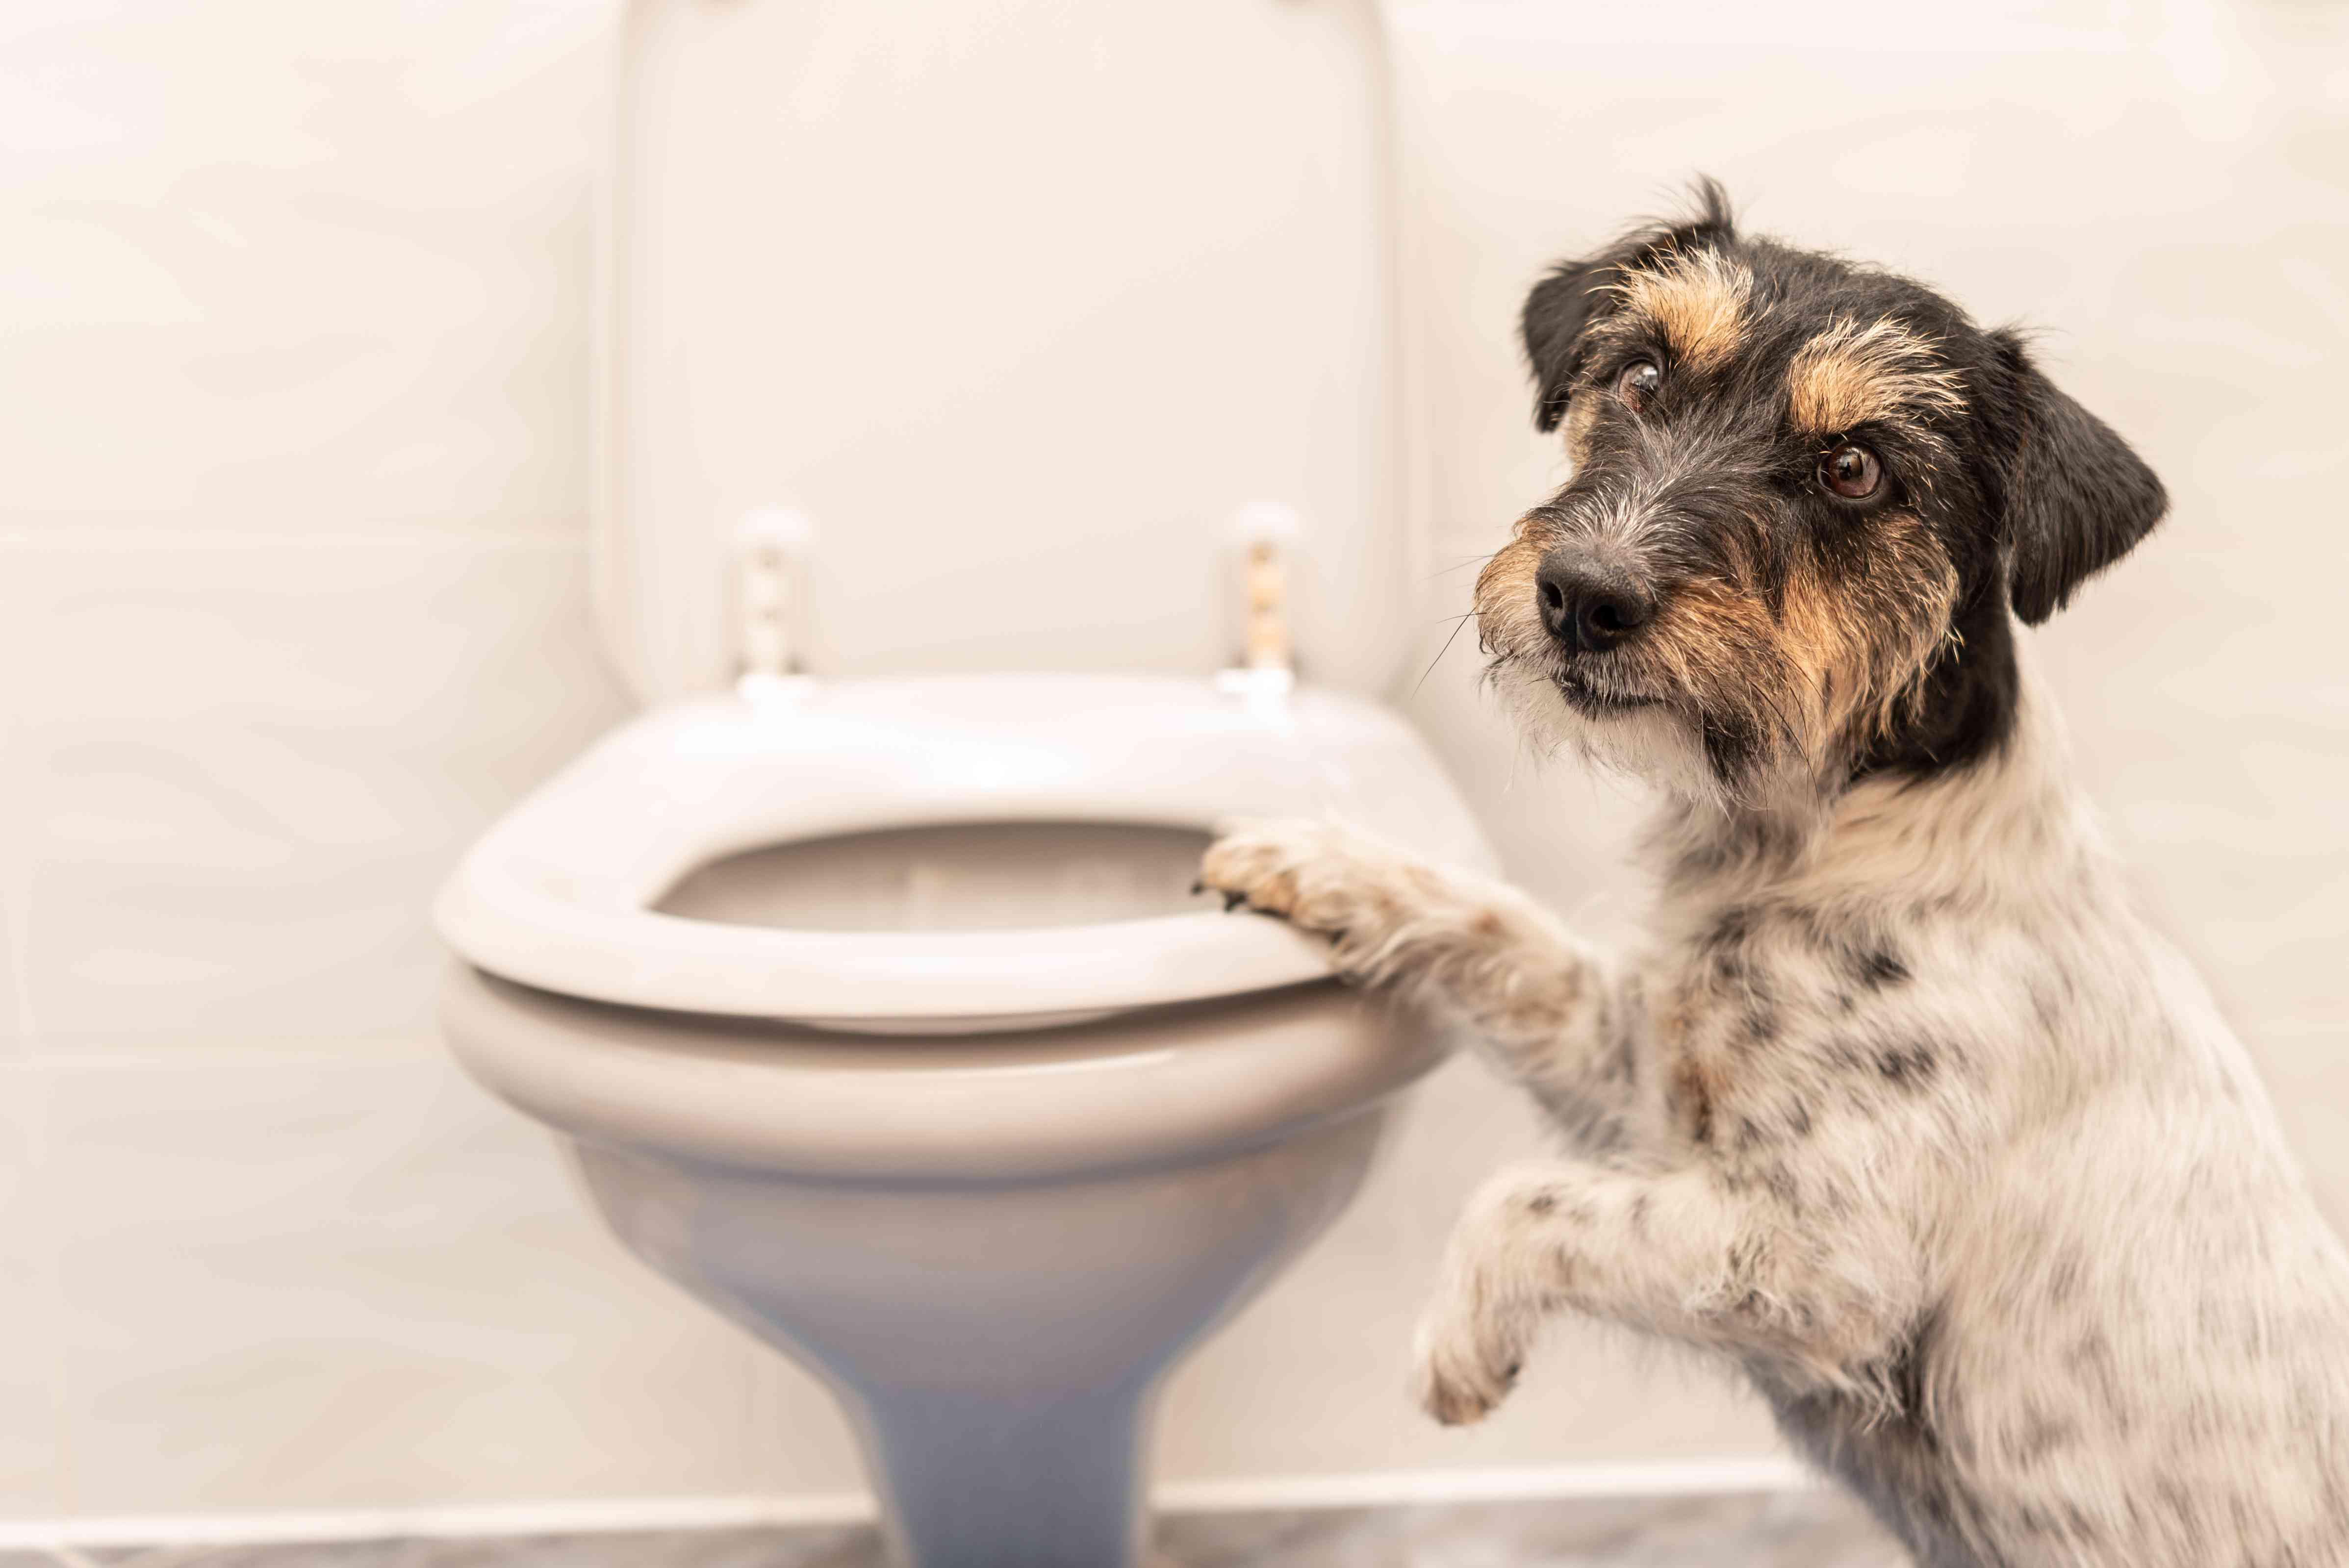 Jack Russell terrier with a paw on the toilet